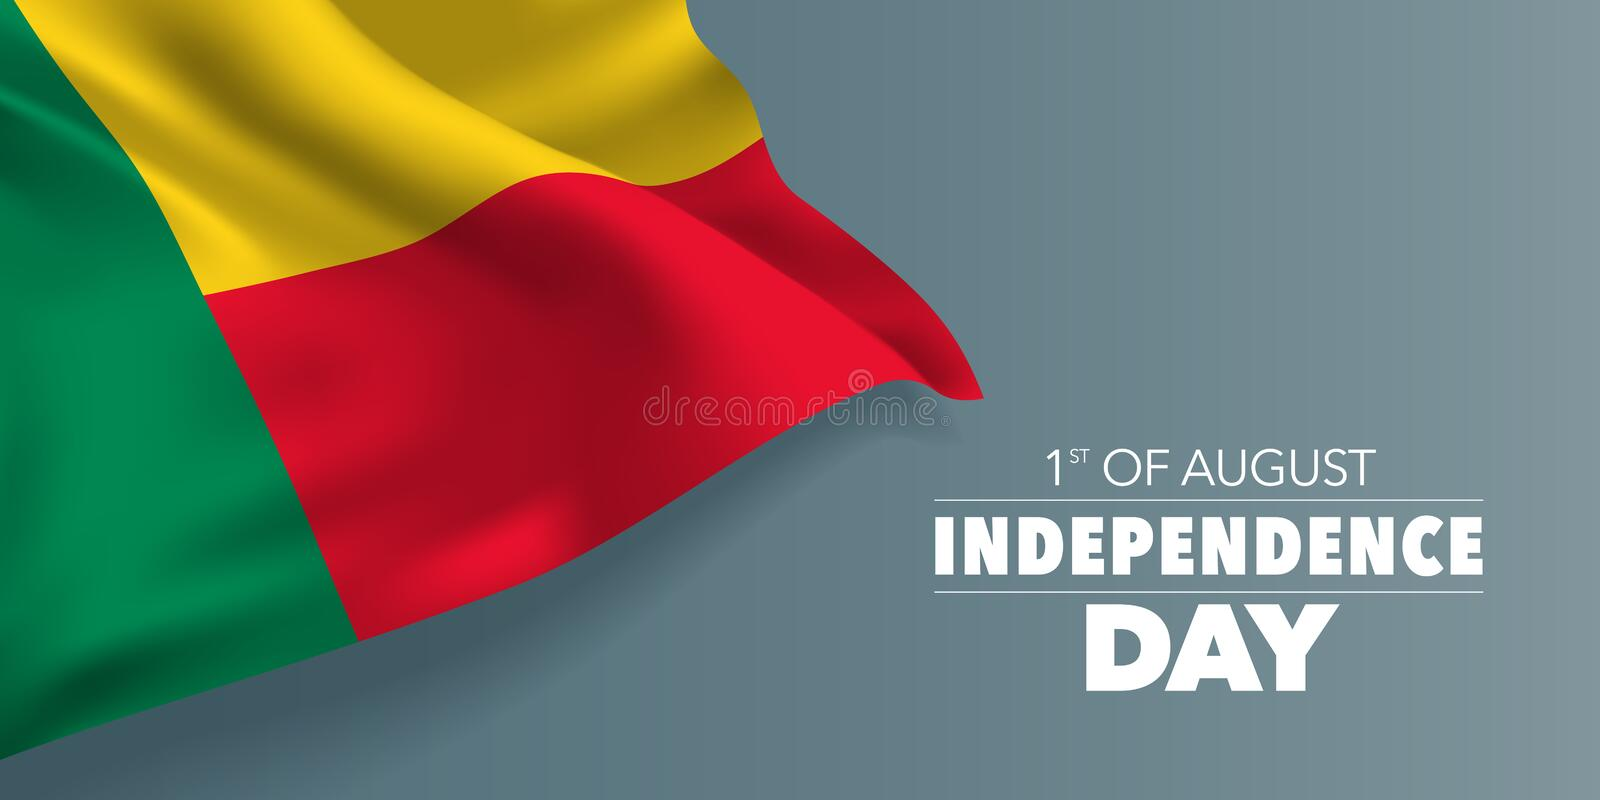 Benin happy independence day greeting card, banner with template text vector illustration. Memorial holiday 1st of August design element with flag with stripes royalty free illustration